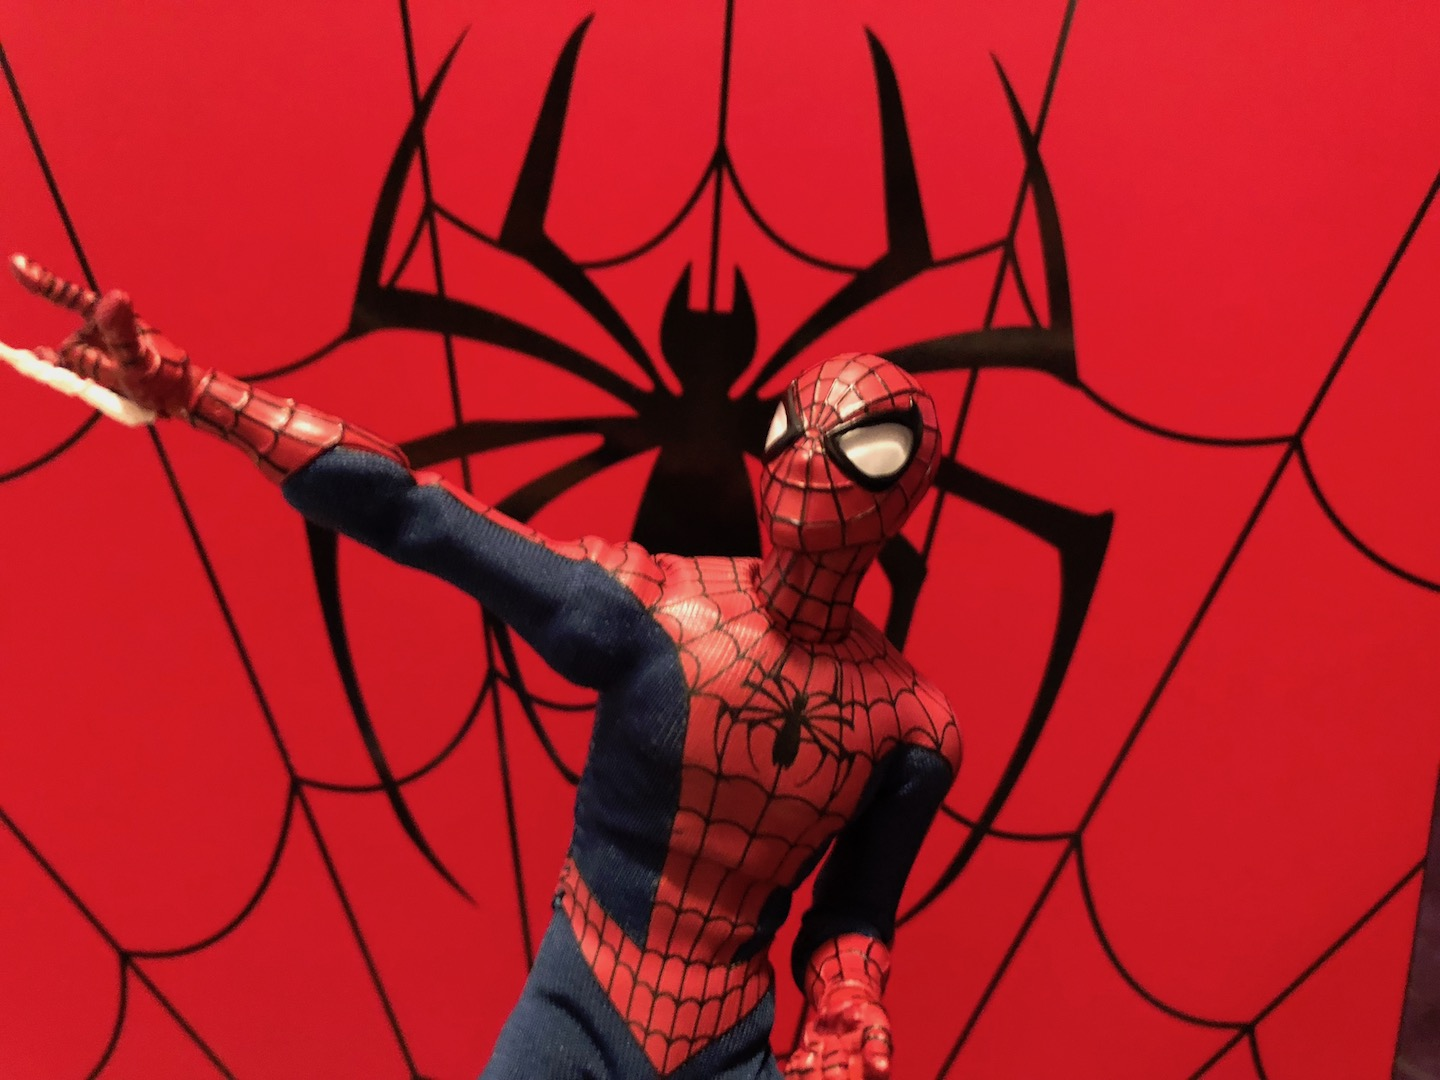 Unboxing/Review: Mezco One:12 Collective classic Spider-Man figure